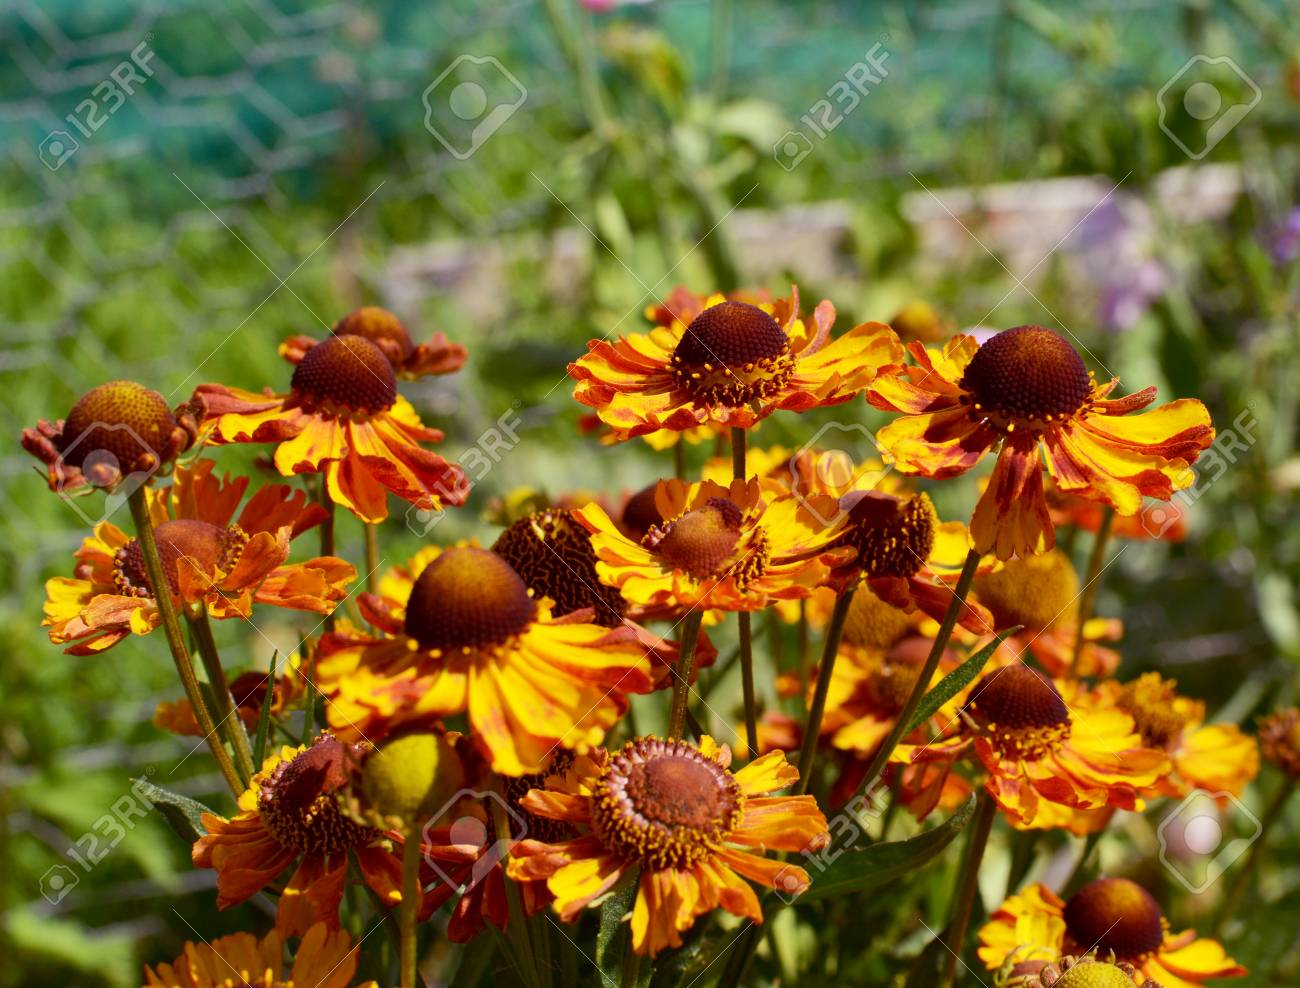 Cluster Of Red Brown And Yellow Helenium Flowers Common Name